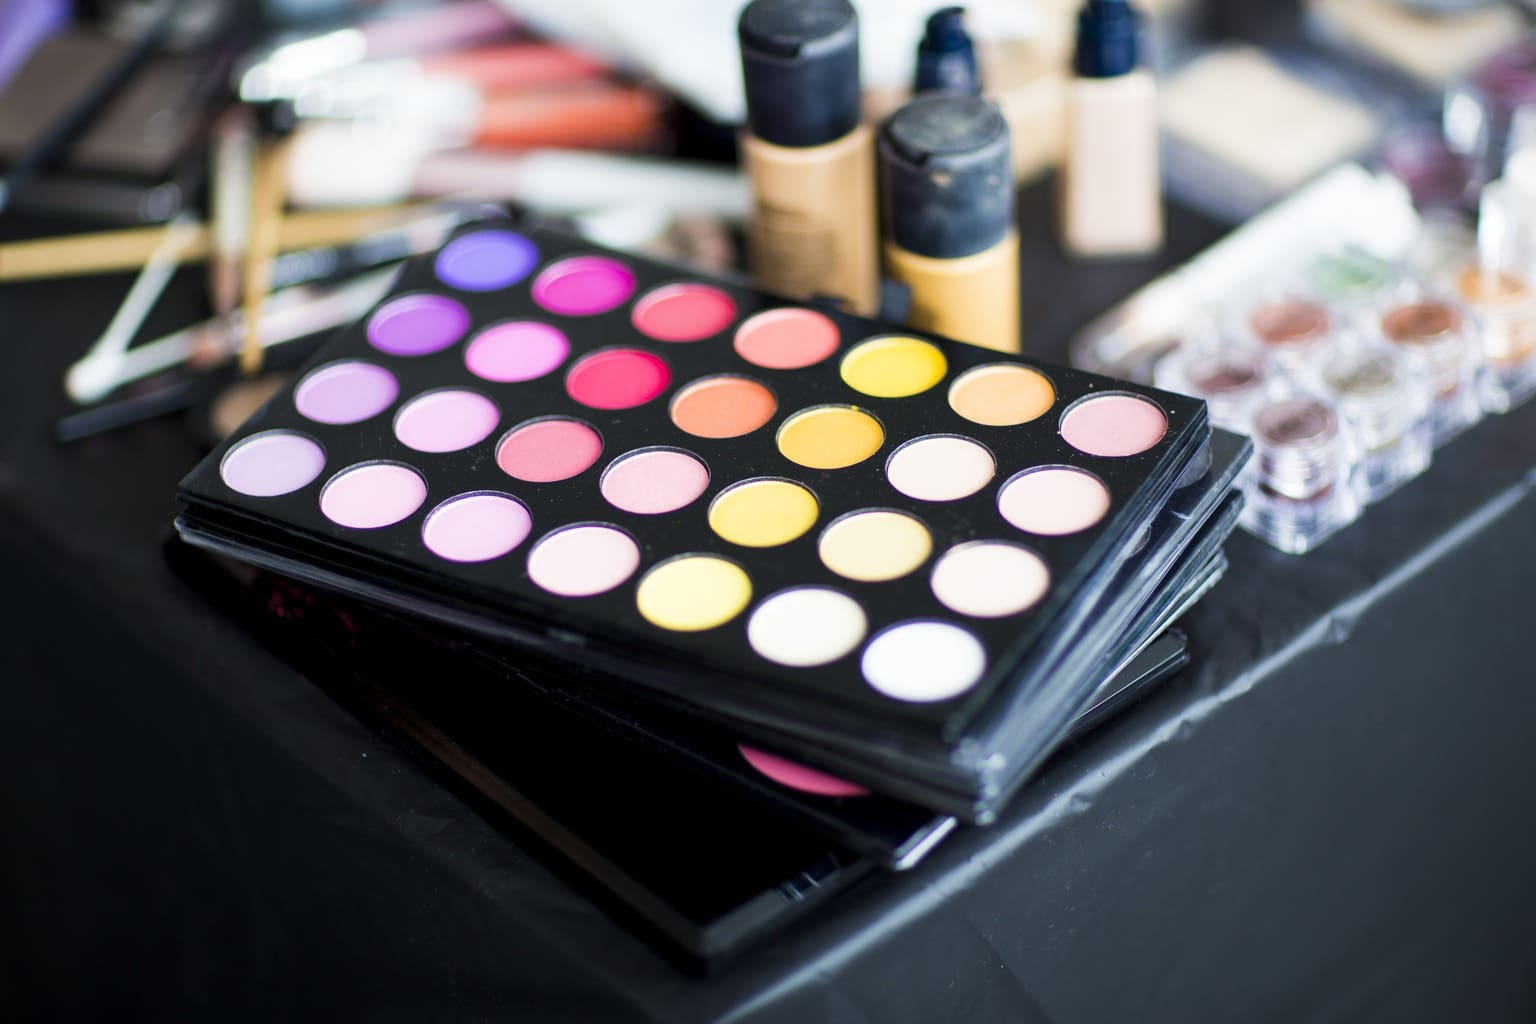 a-palette-of-bright-eyeshadow-makeup